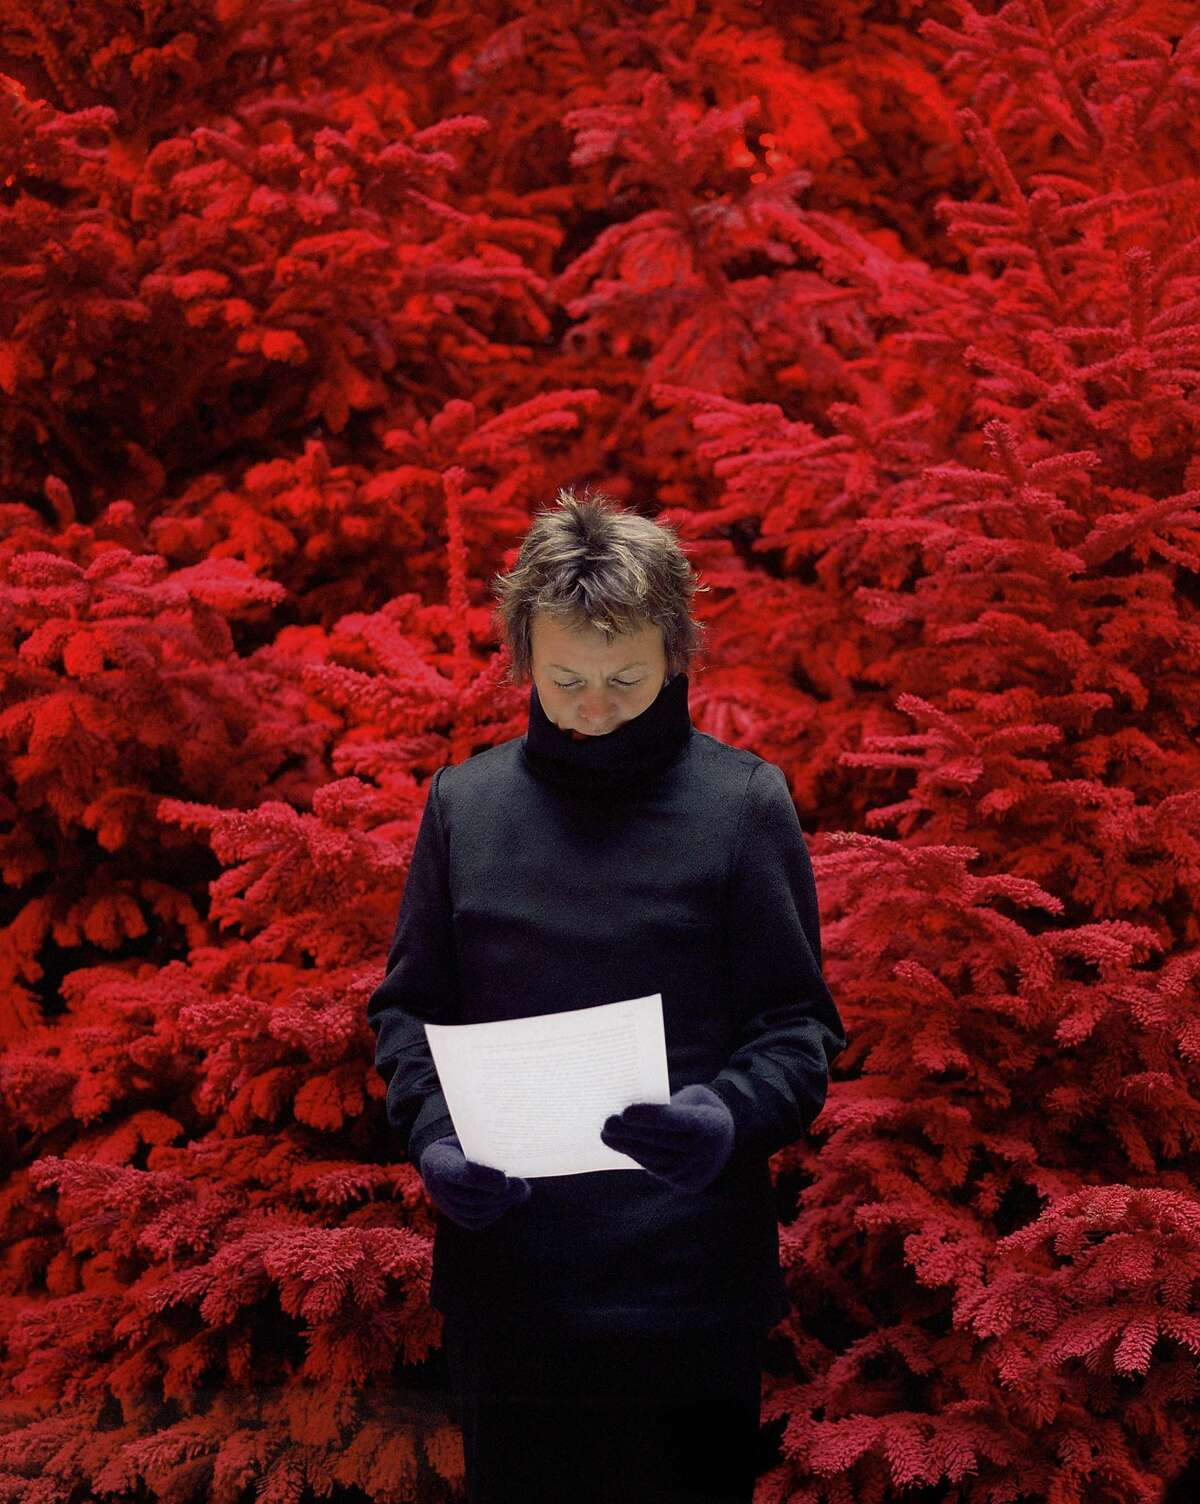 """Sophie Calle's """"Take care of yourself. Laurie Anderson""""."""